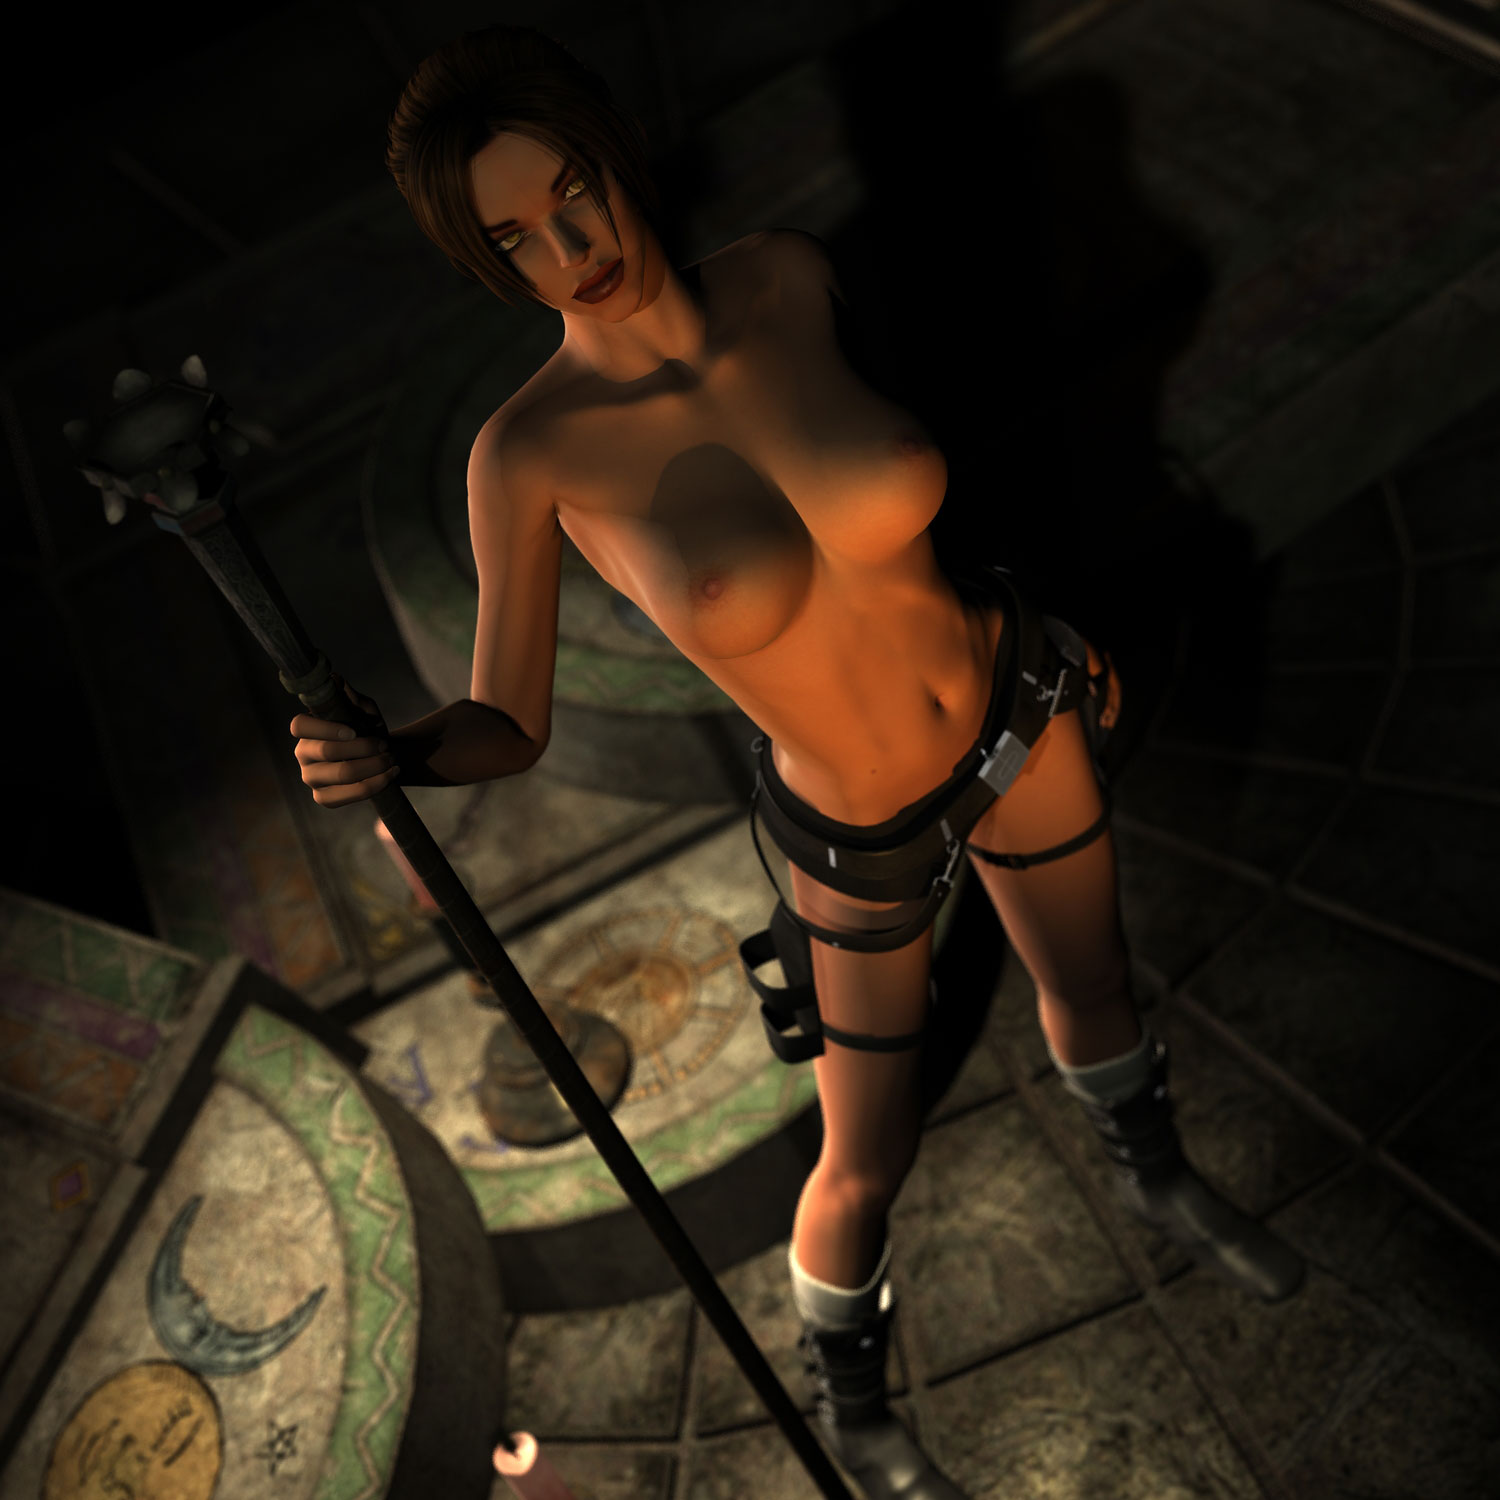 Lara croft naked full body hentai galleries